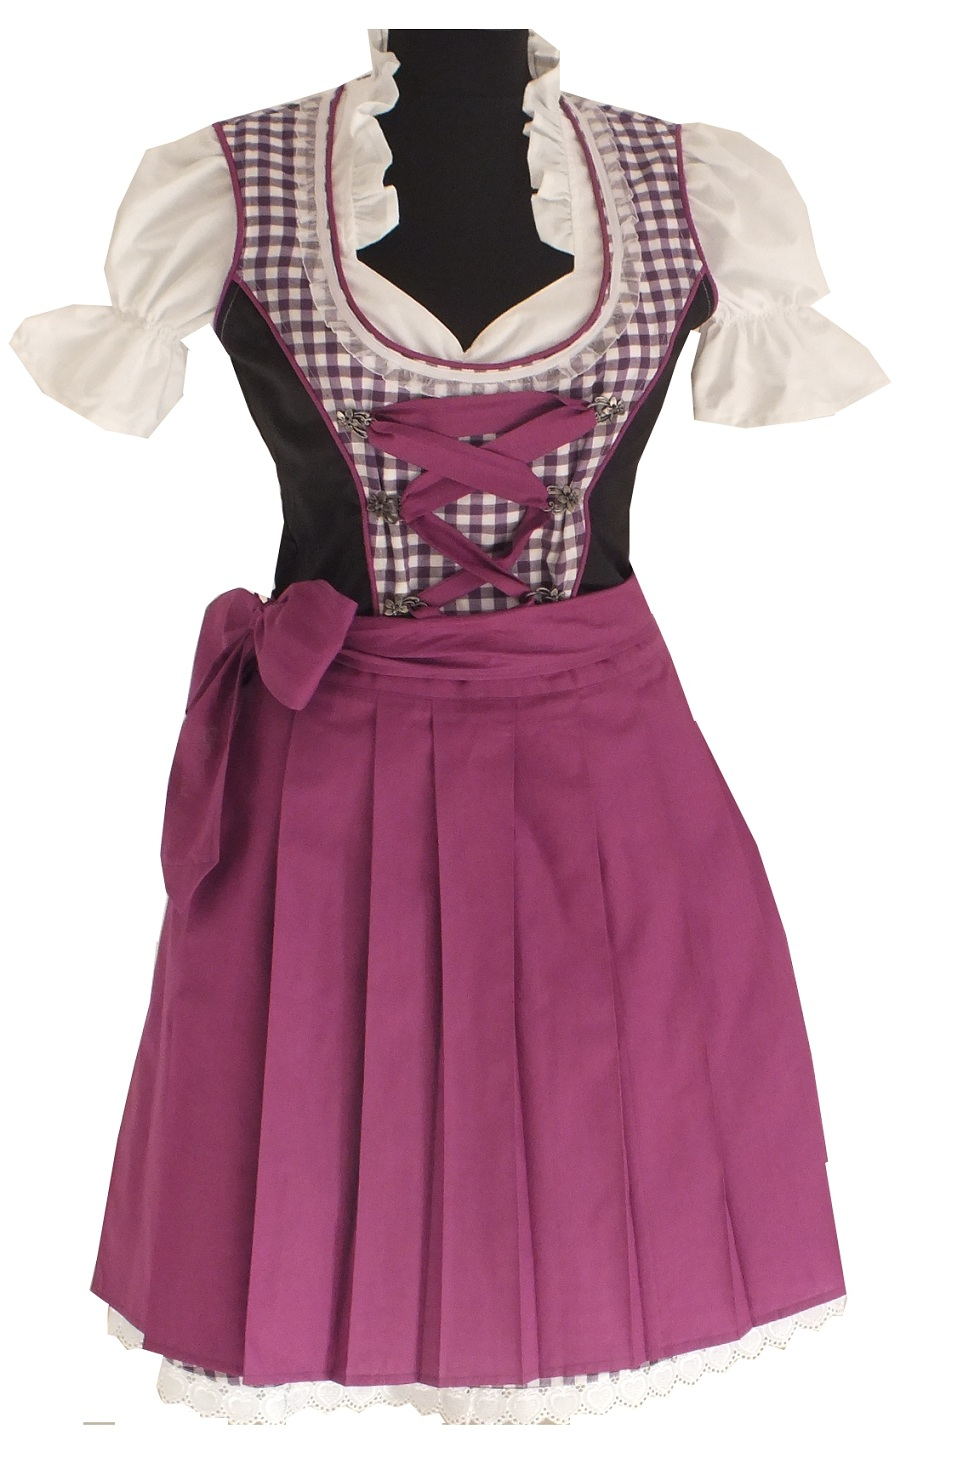 3tlg dirndl gr 52 48 trachten sch rze bluse lila kariert. Black Bedroom Furniture Sets. Home Design Ideas